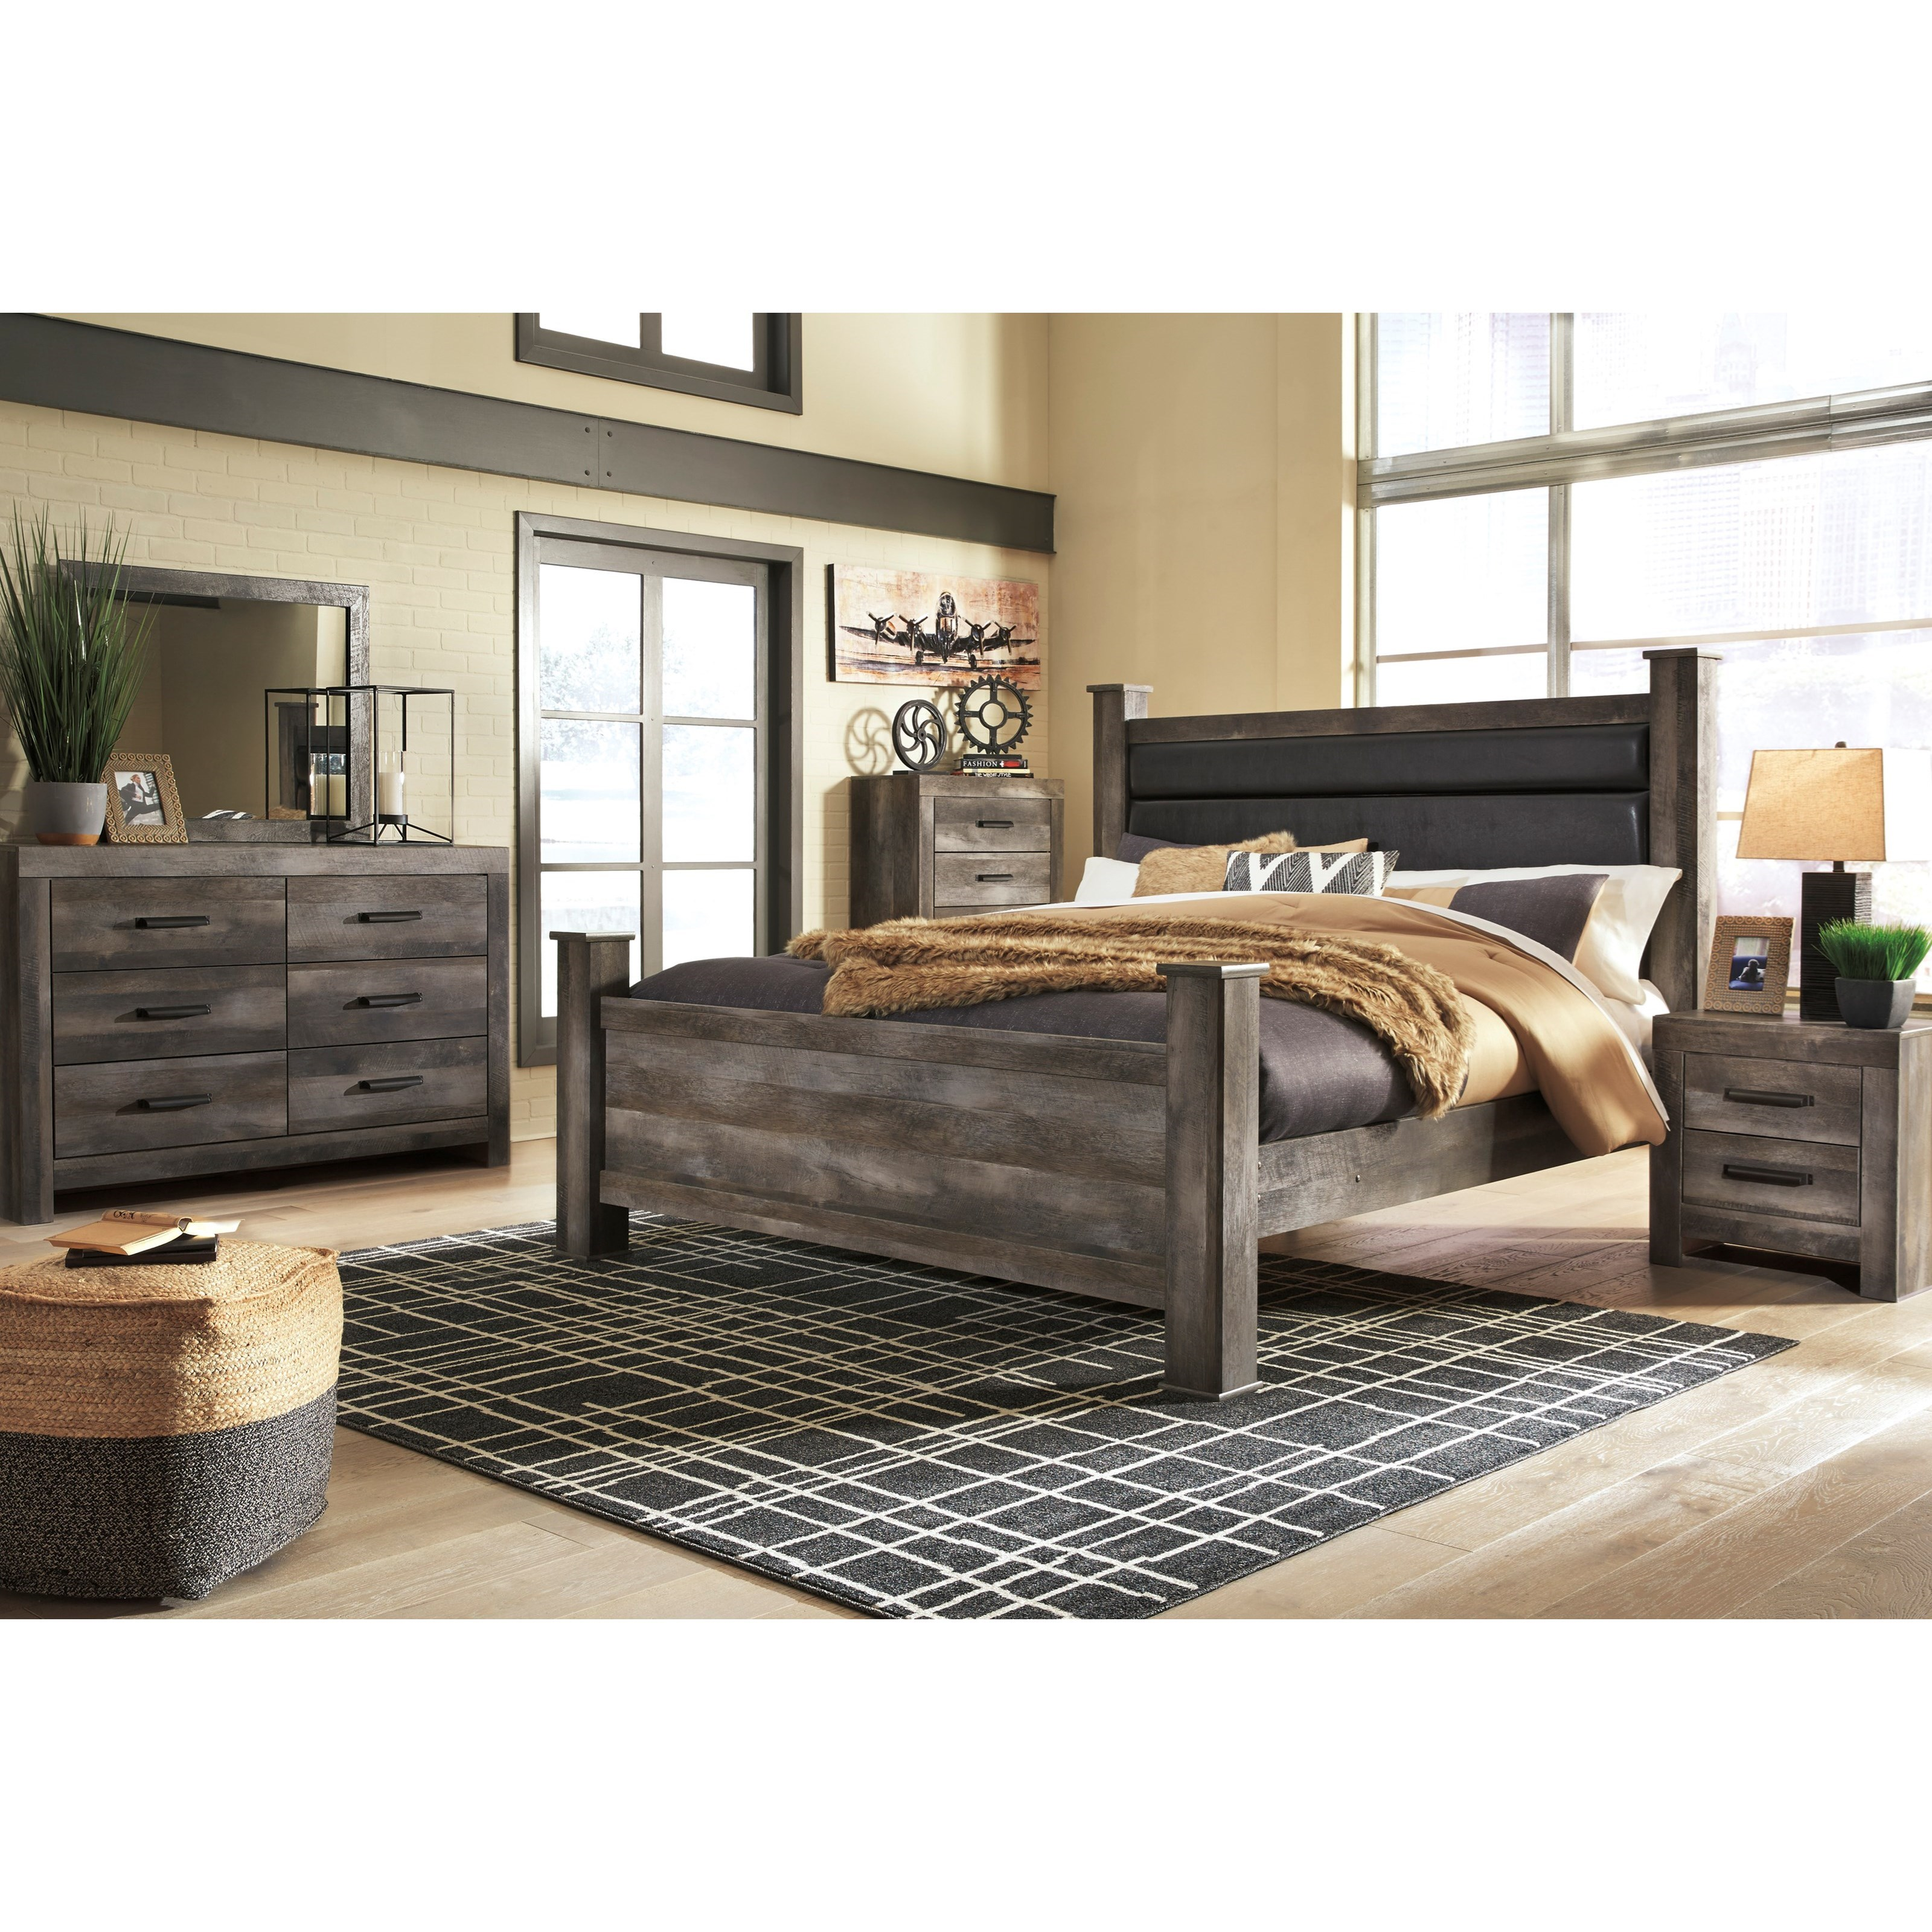 Signature Design By Ashley Wynnlow Queen Rustic Poster Bed